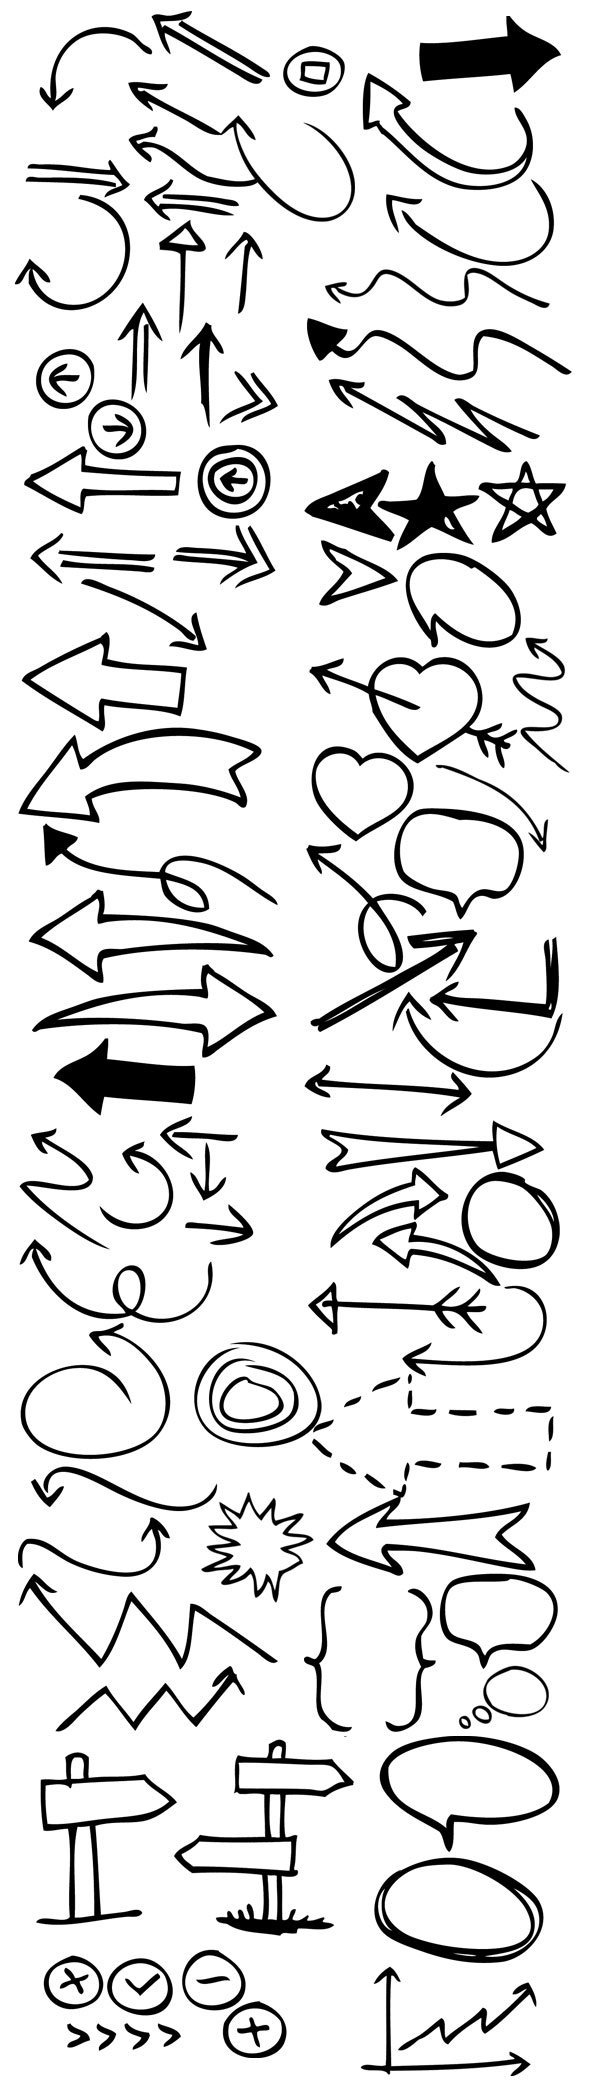 90 Hand Drawn Arrow And Symbol Photoshop Brushes Graphicsfuel